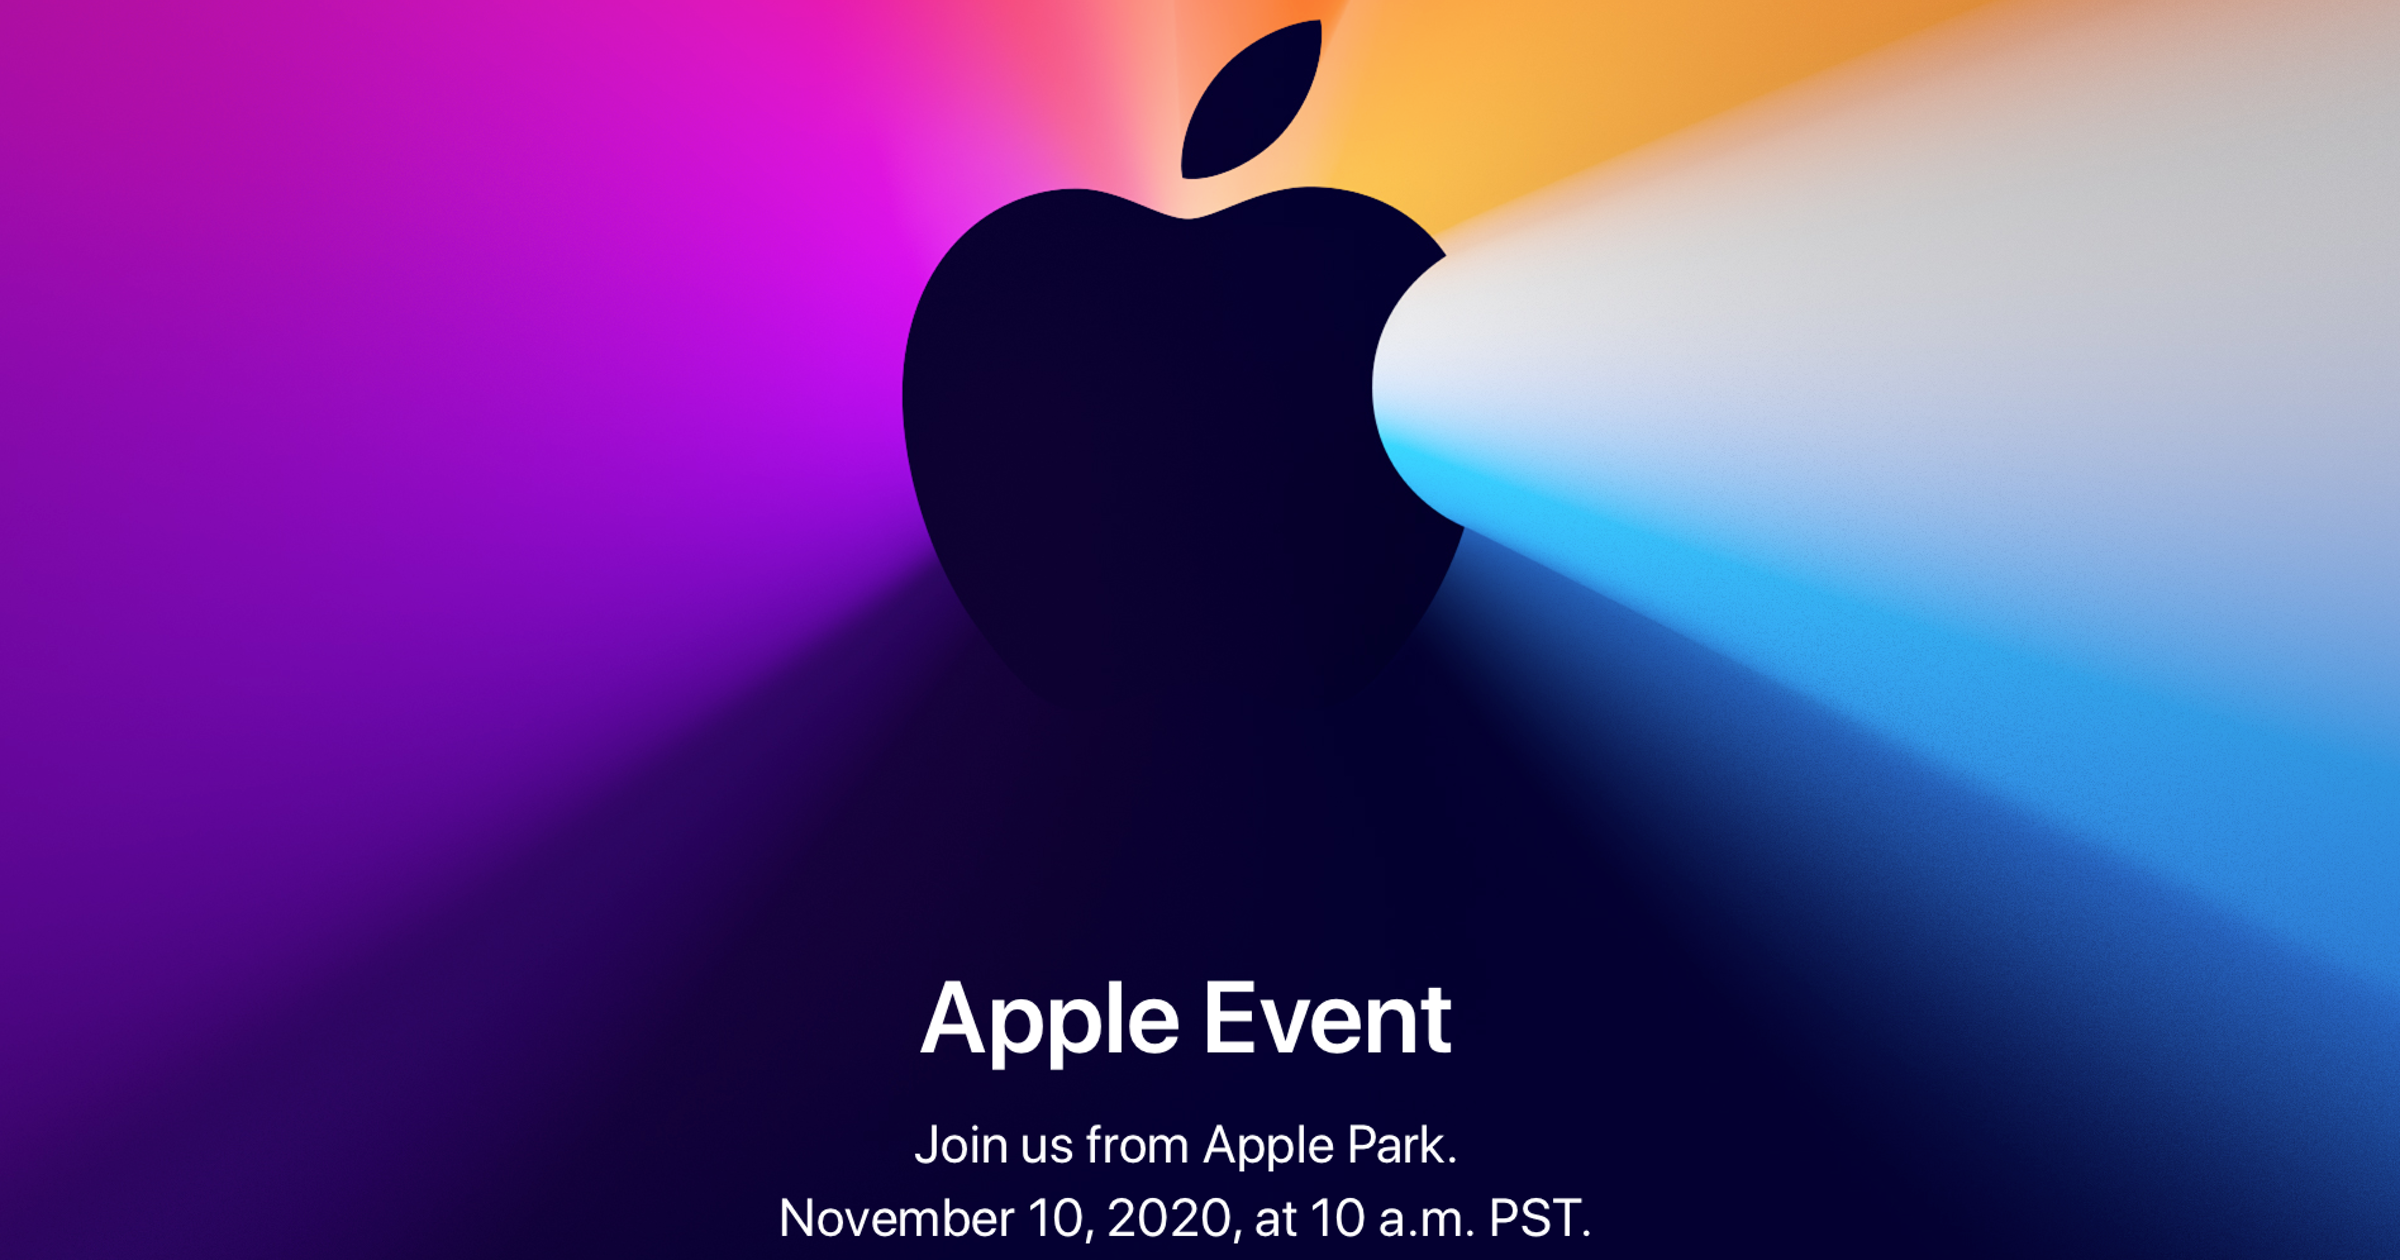 Apple Event 'One More Thing' logo